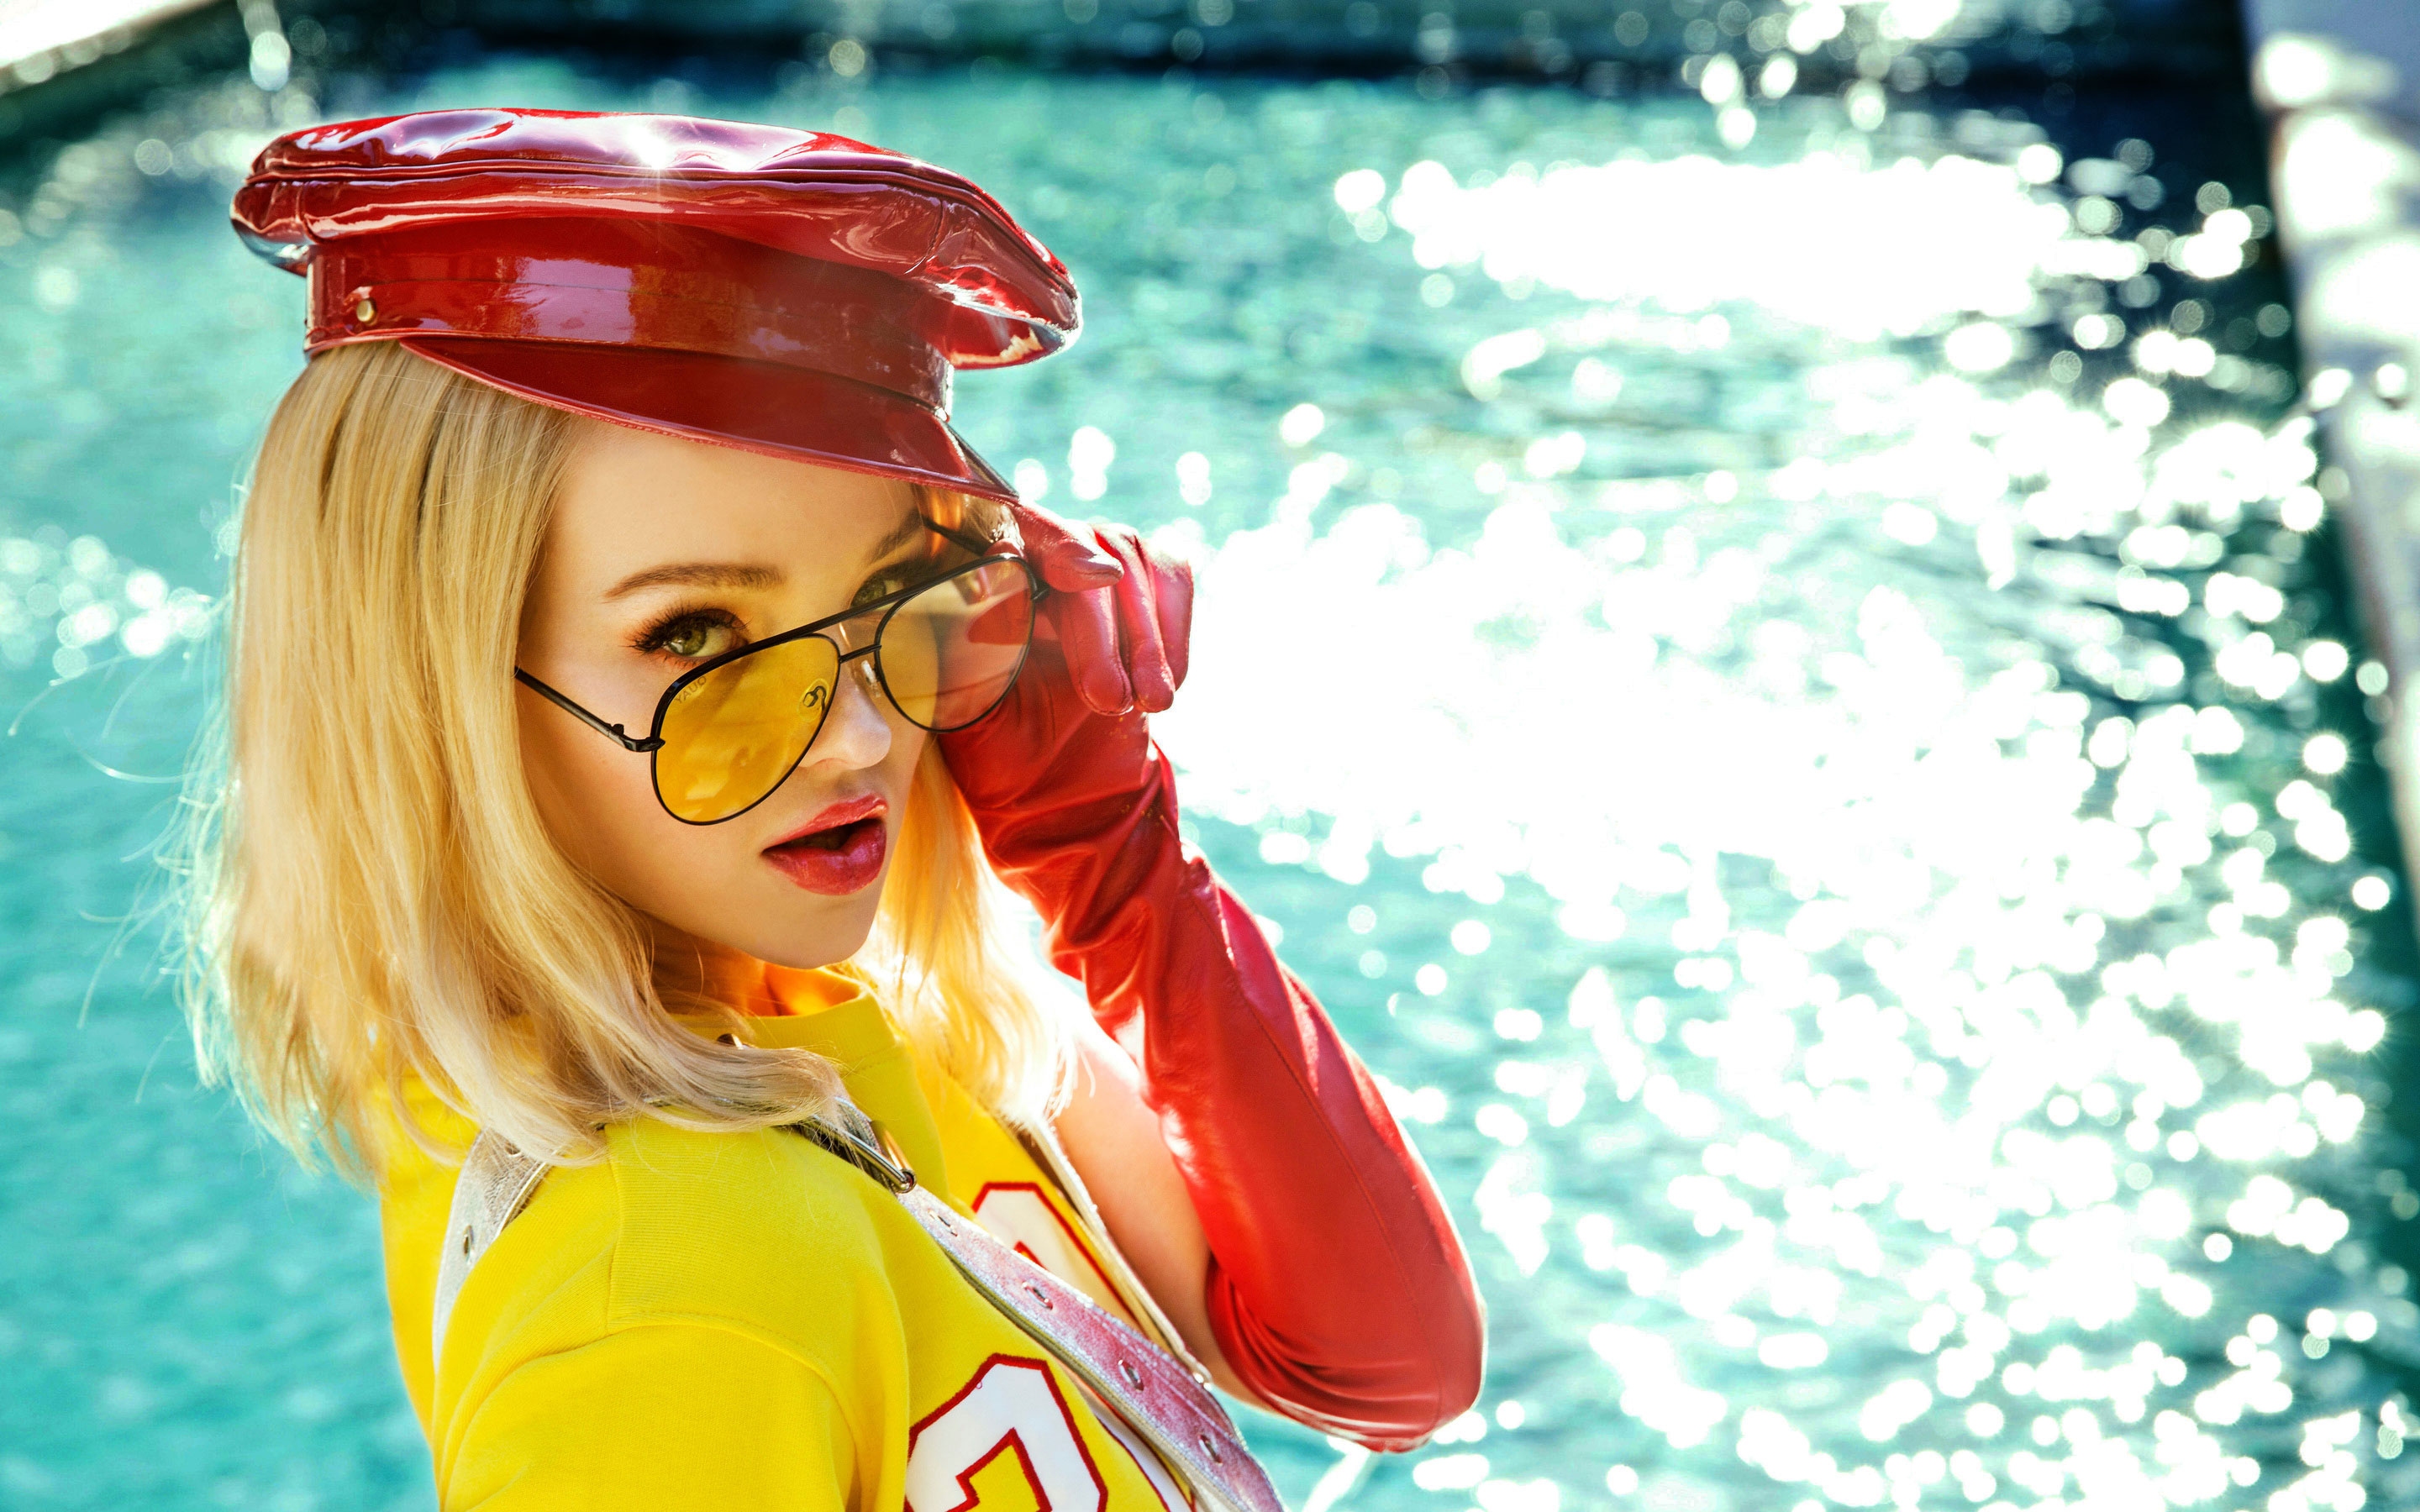 2880x1800 - Dove Cameron Wallpapers 5